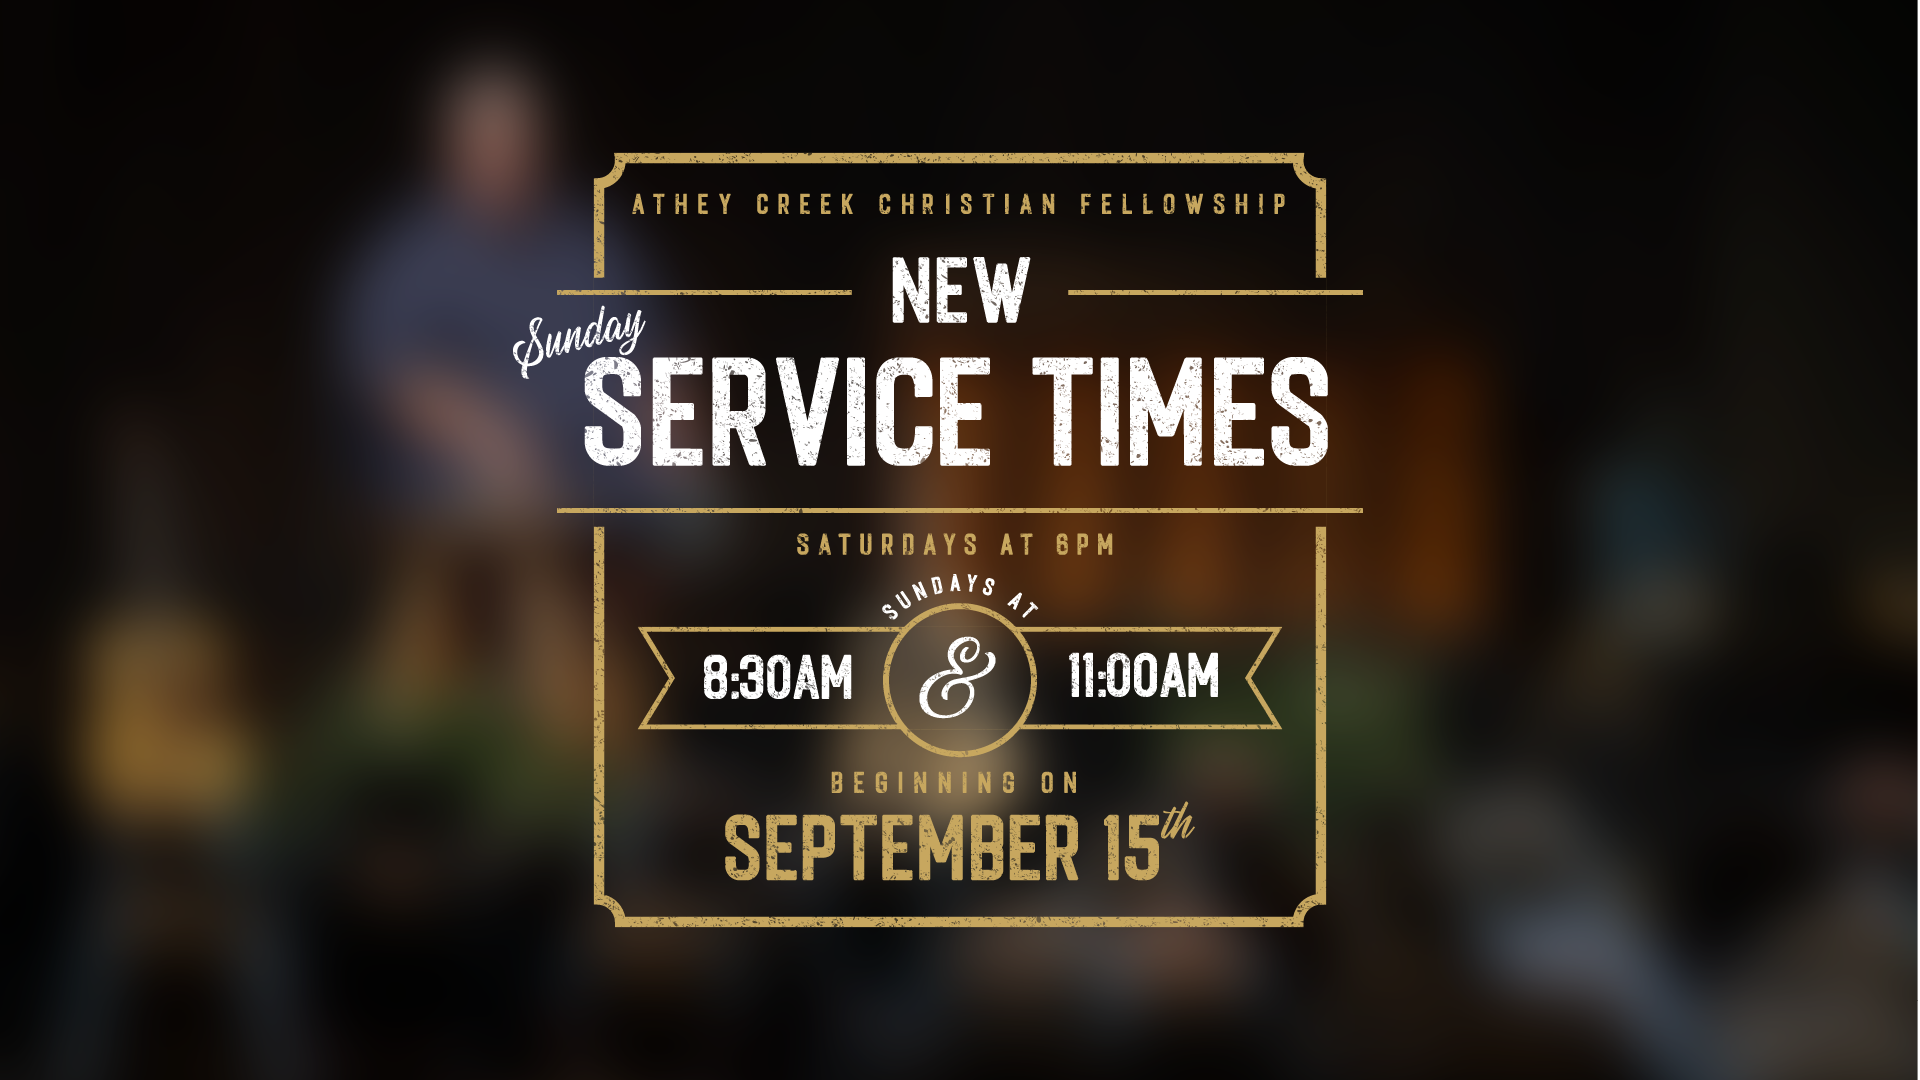 Poster for New Service Times